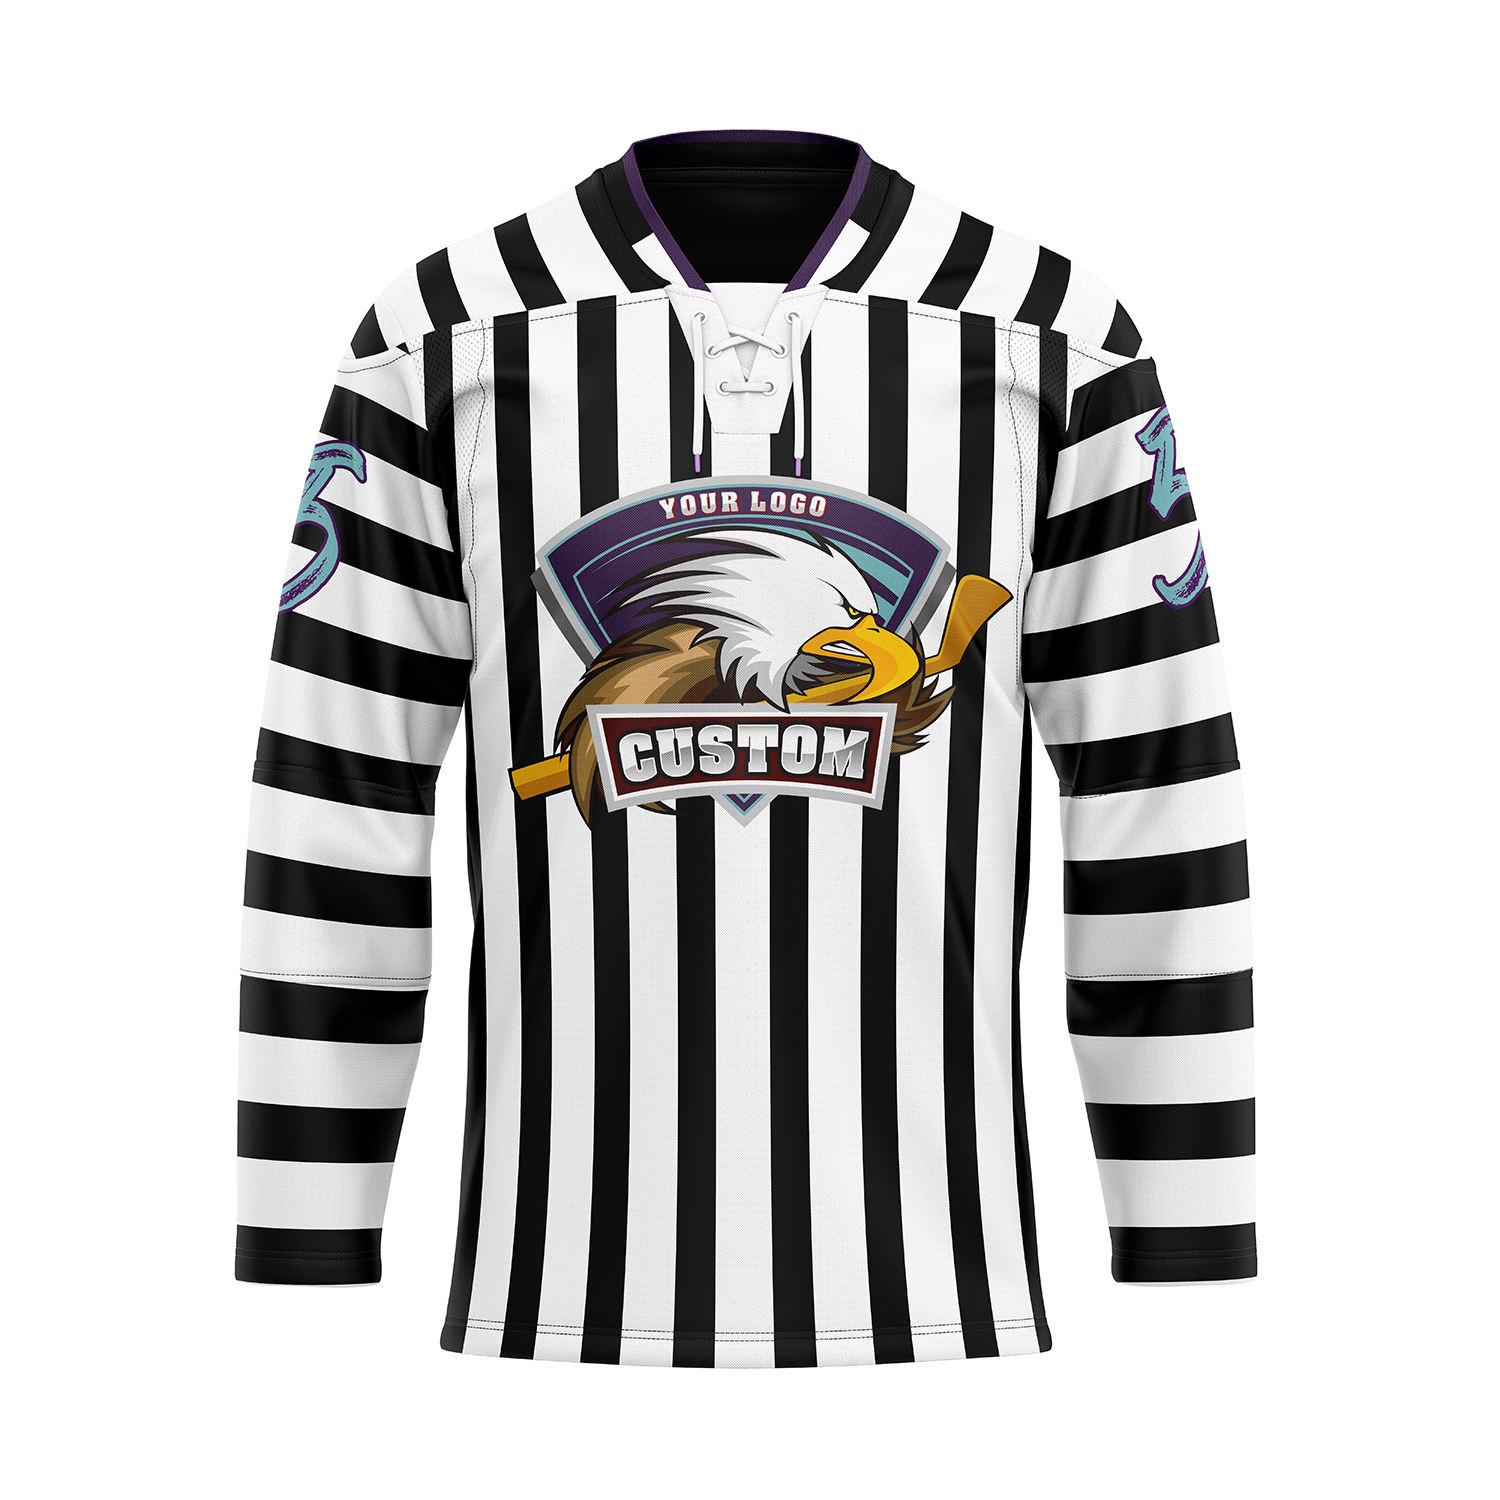 Custom tackle twill embroidery Goalie cut jersey sublimation ice hockey jersey